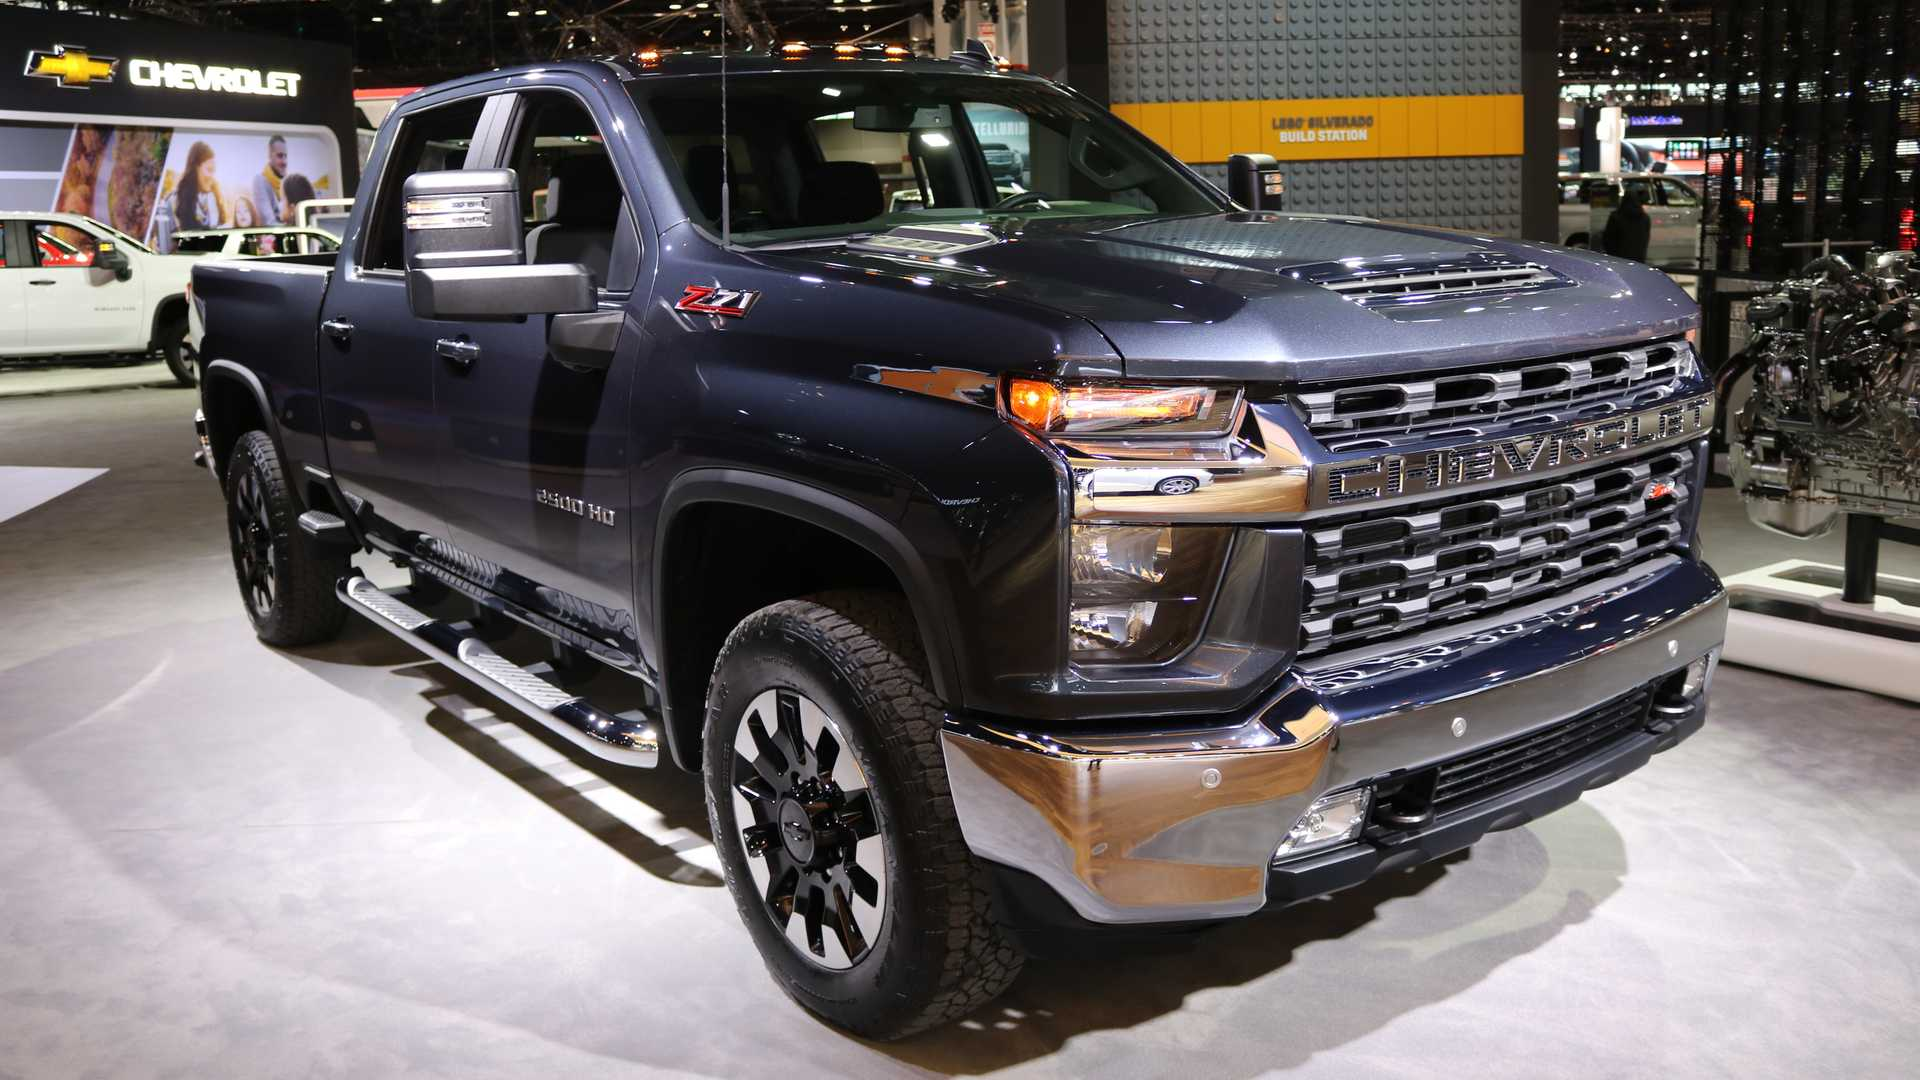 87 All New Chevrolet Silverado 2020 Pricing